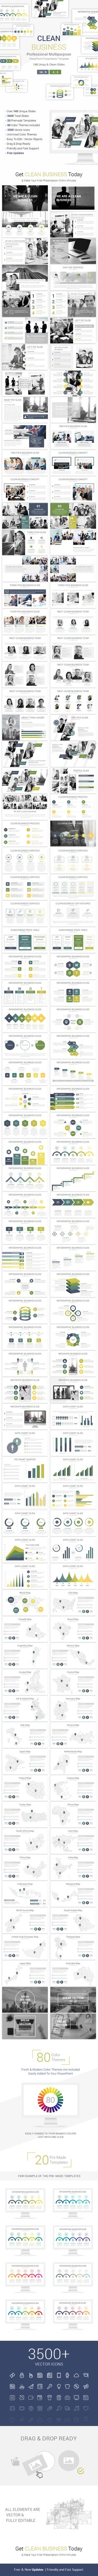 Clean Business PowerPoint Presentation Template - Business #PowerPoint #Templates Download here: https://graphicriver.net/item/clean-business-powerpoint-presentation-template/20139237?ref=alena994